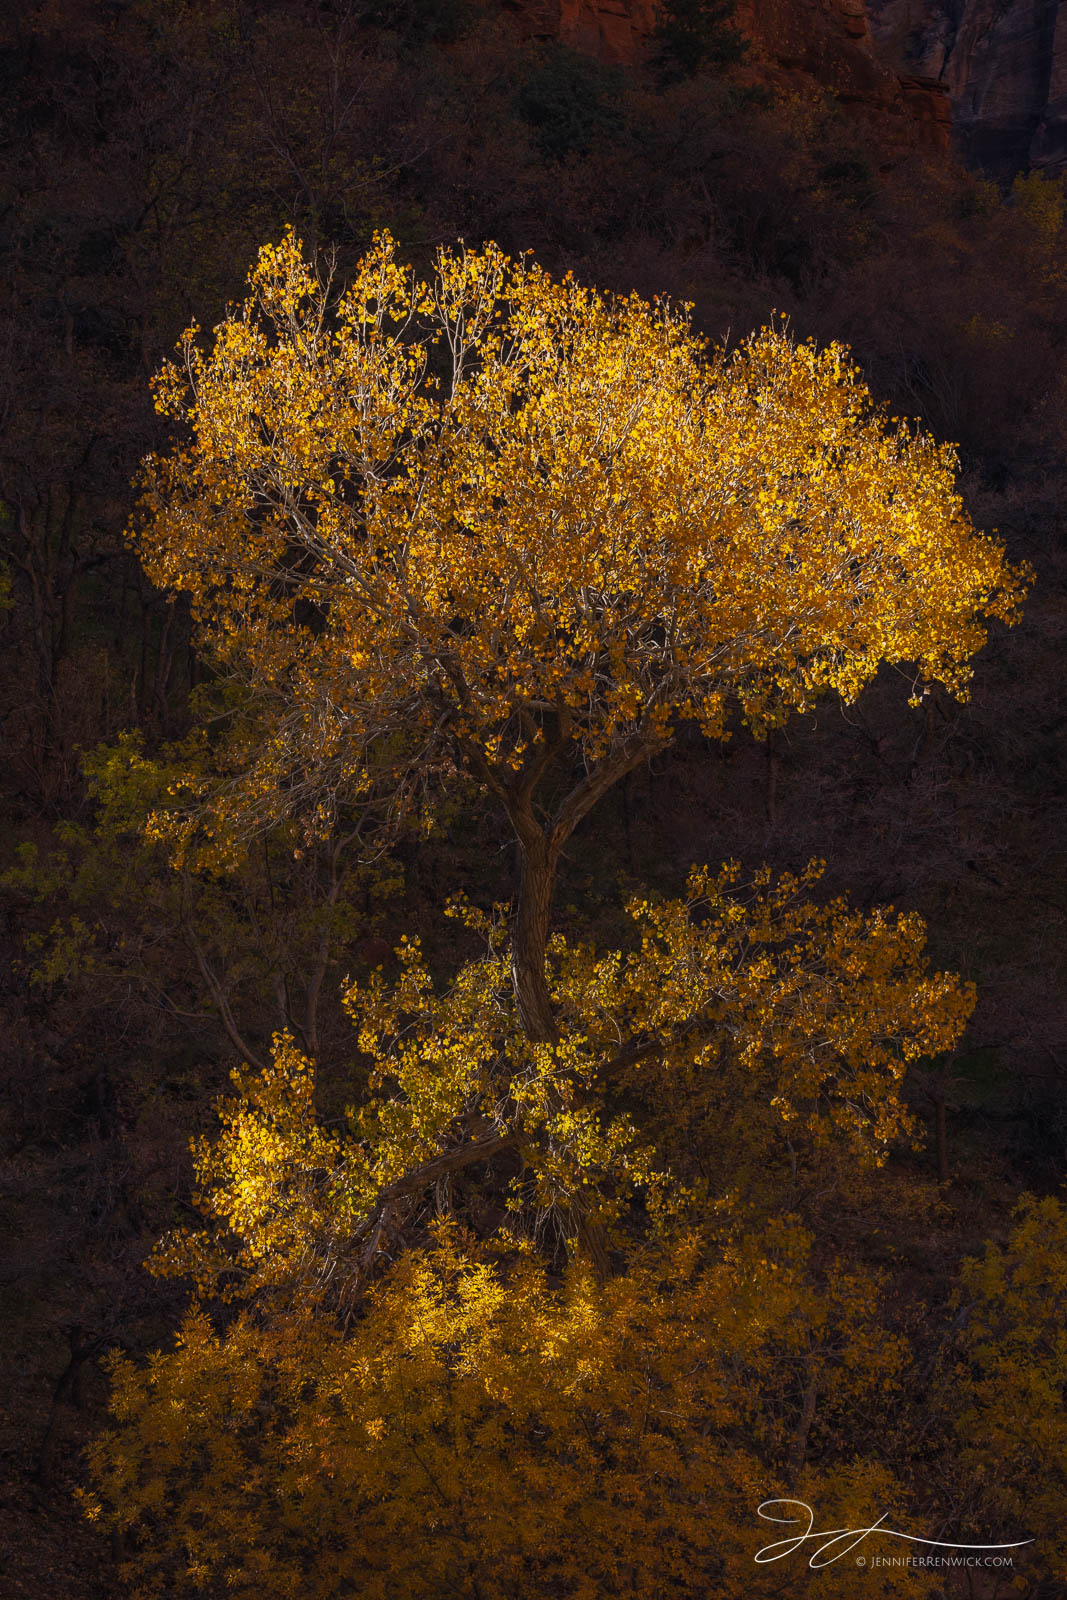 A cottonwood tree in Zion Canyon catches the last light of day on its crown.